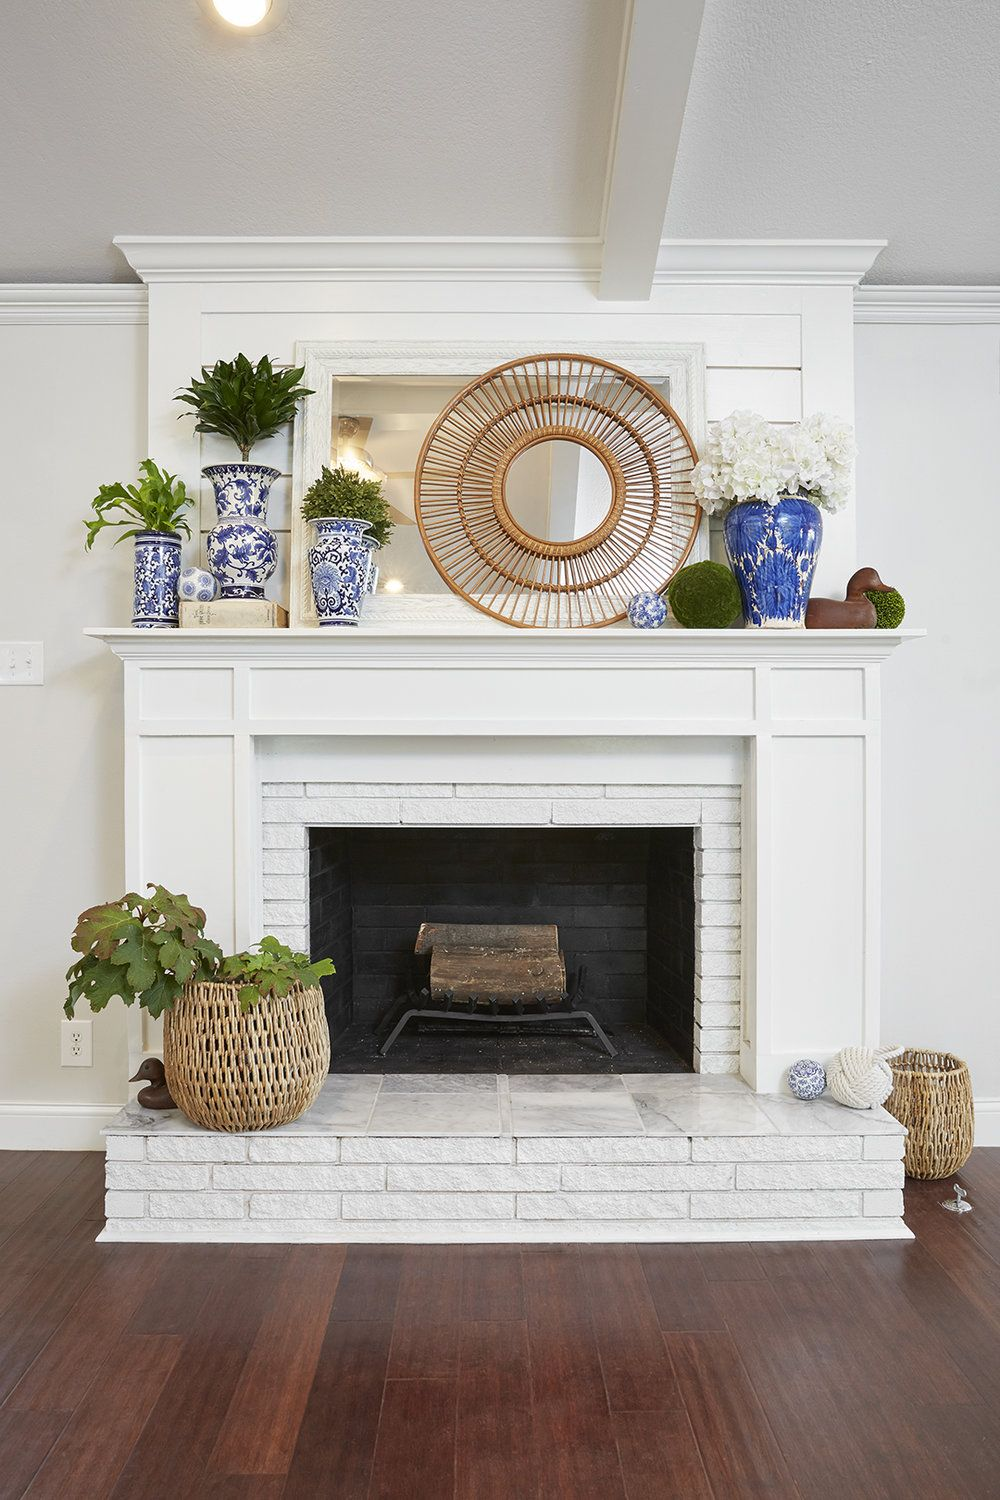 How To Paint Brick Def Want Learn More Farmhouse Fireplace Which Is Old And Really Darkening In The Room Going Also Be